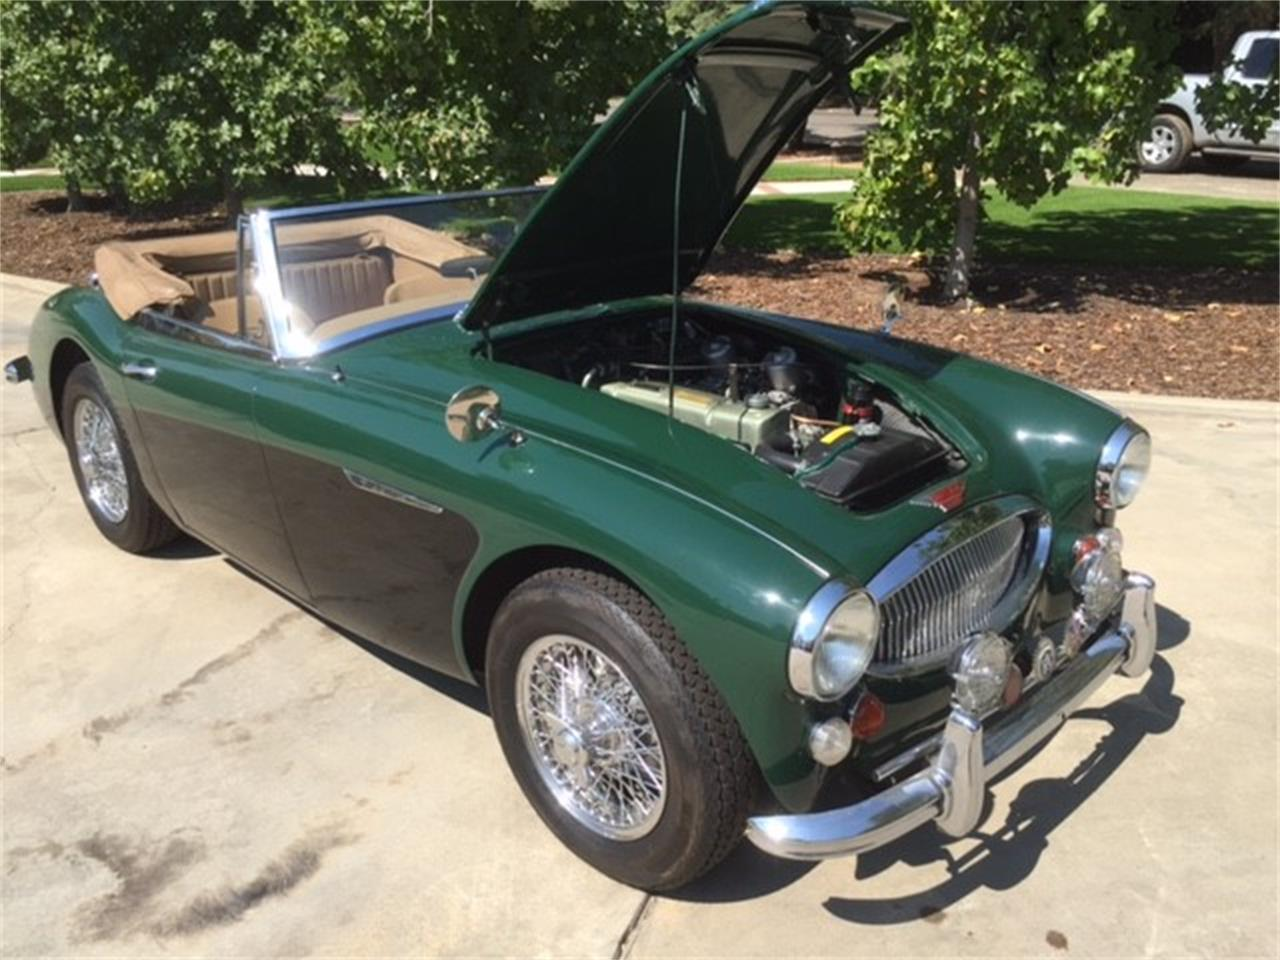 Large Picture of Classic '67 3000 located in California - $65,000.00 Offered by a Private Seller - LBWQ